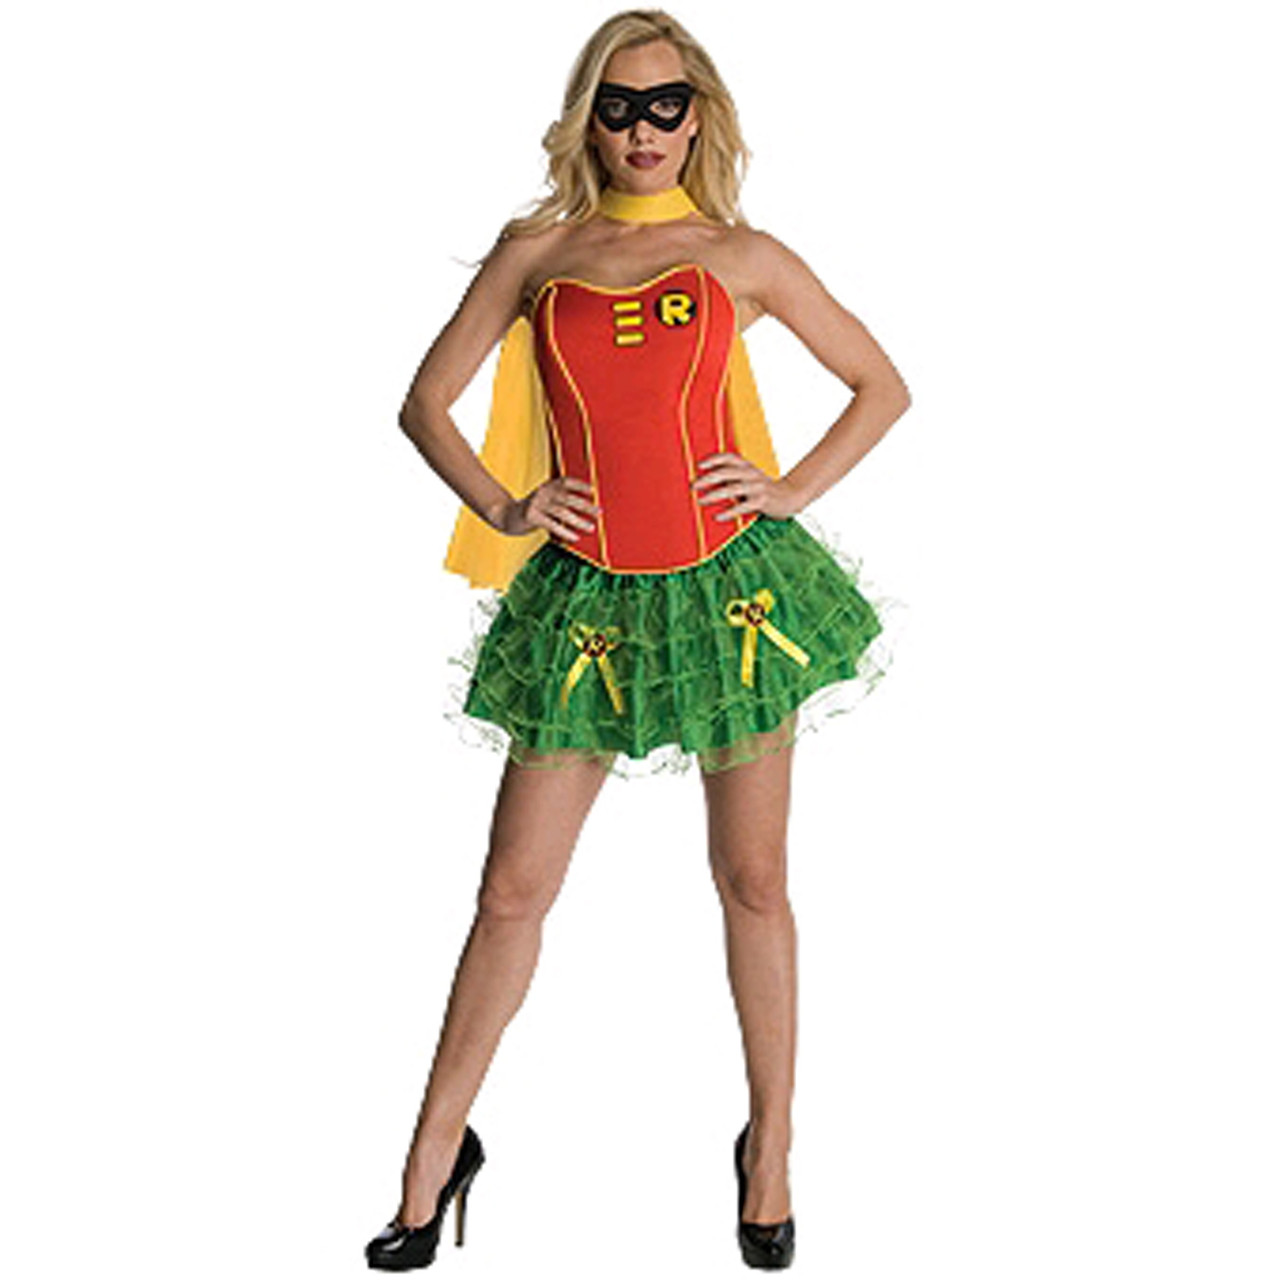 ROBIN CORSET/SKIRT Women's Costume